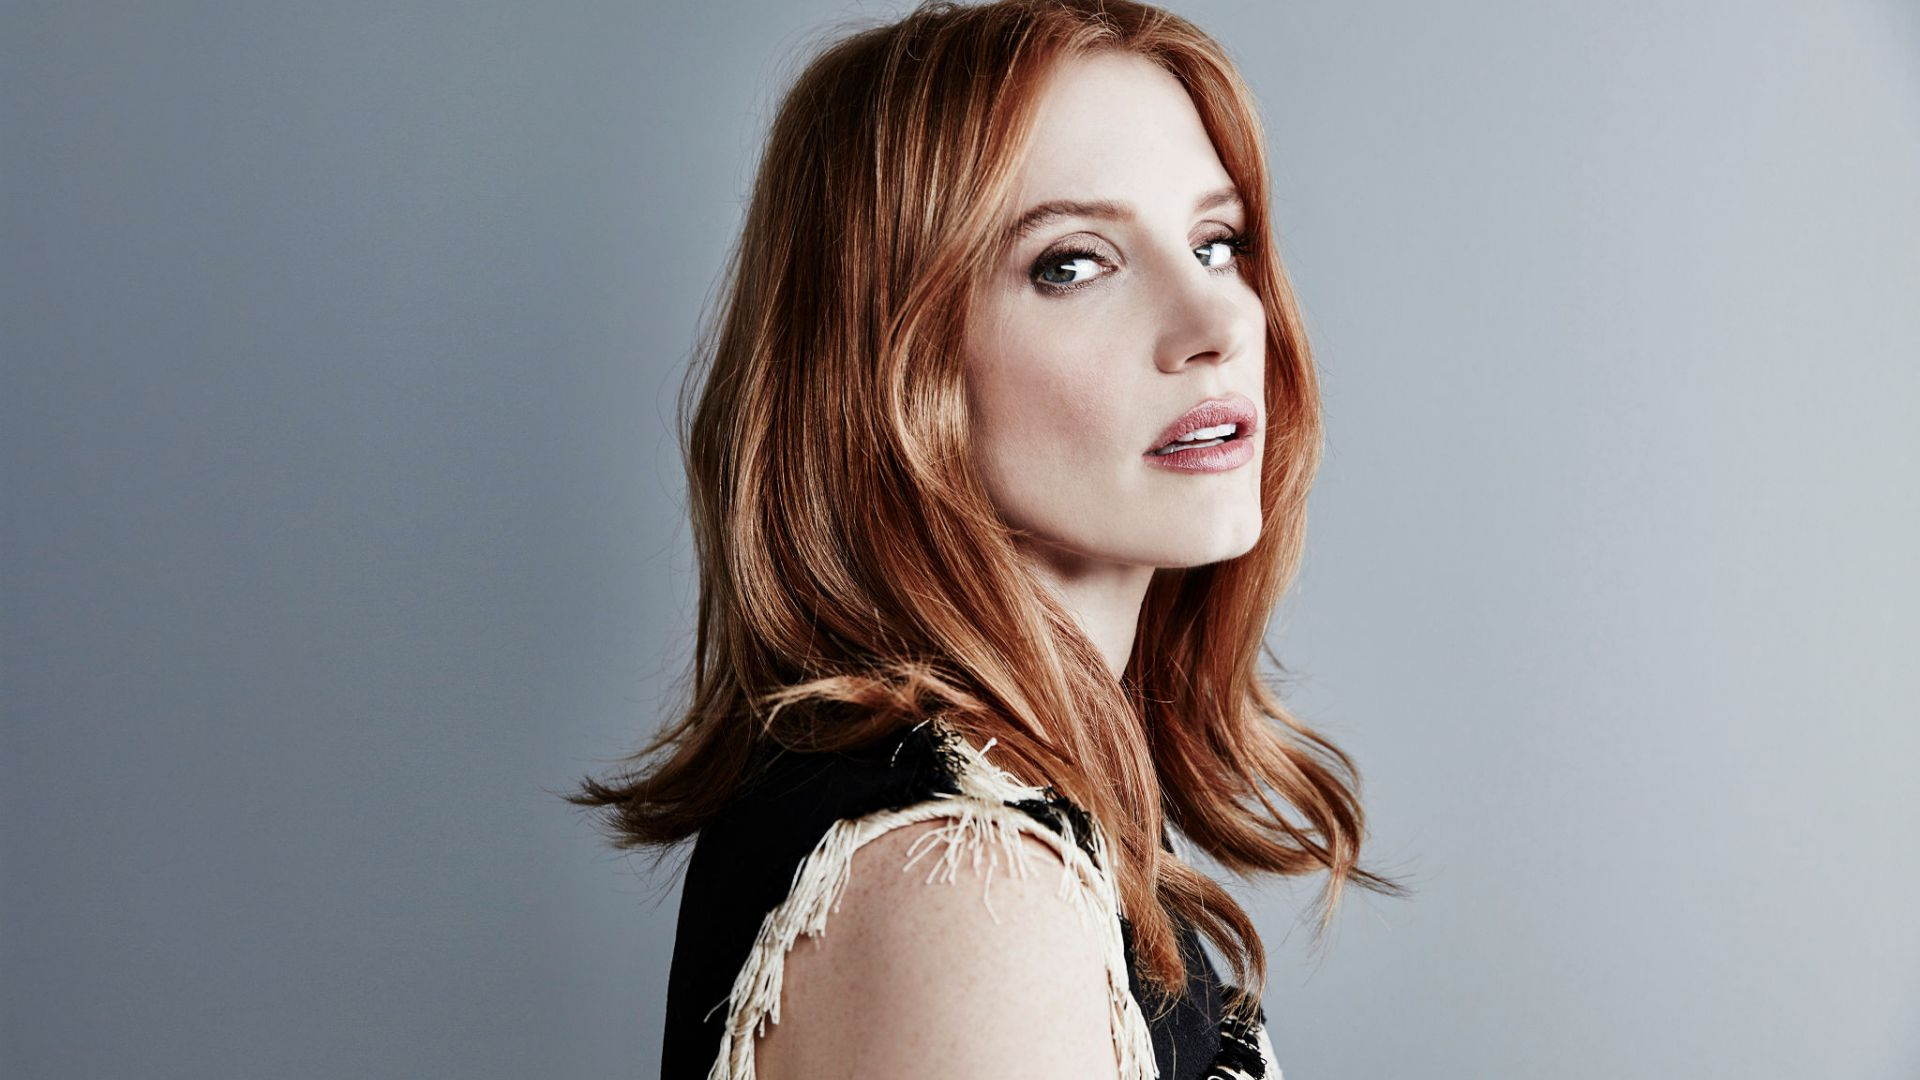 Wallpaper Jessica chastain, red head, actress